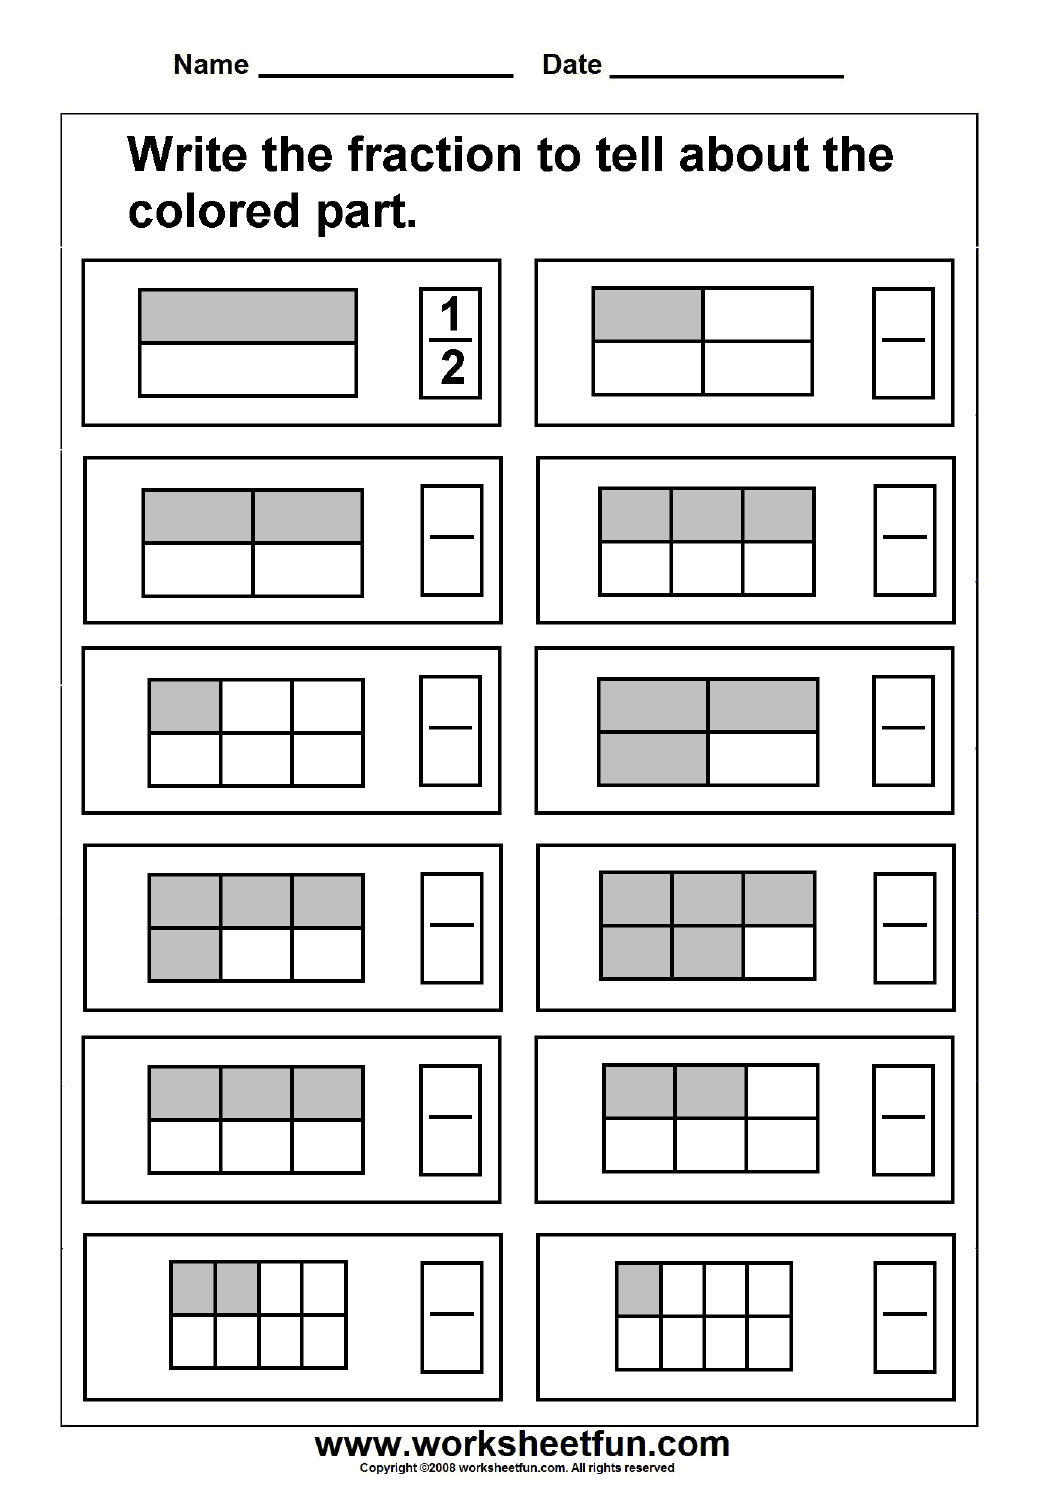 worksheet Fraction Worksheets Printable fraction model free printable worksheets worksheetfun 3 worksheets